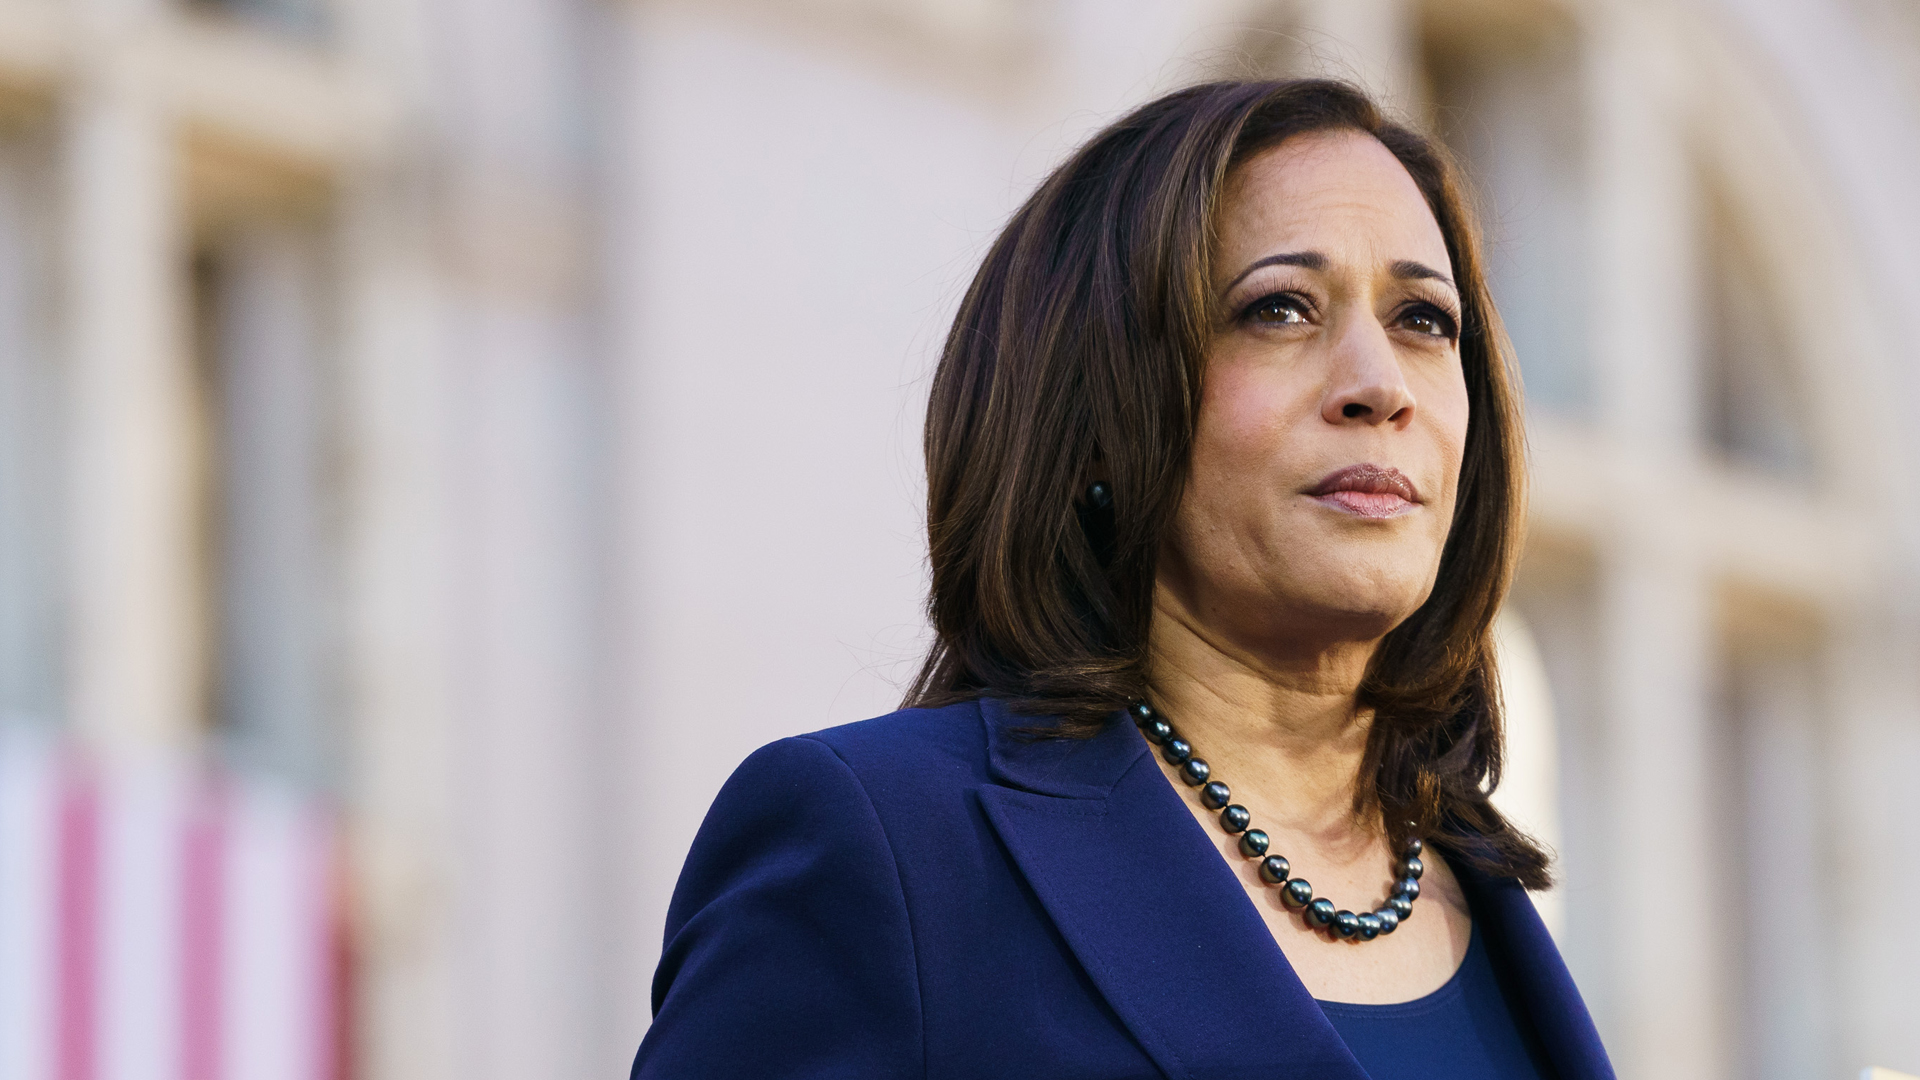 Sen. Kamala Harris (D-CA) speaks to her supporters during her presidential campaign launch rally in Frank H. Ogawa Plaza on Jan. 27, 2019, in Oakland, California. (Credit: Mason Trinca/Getty Images)